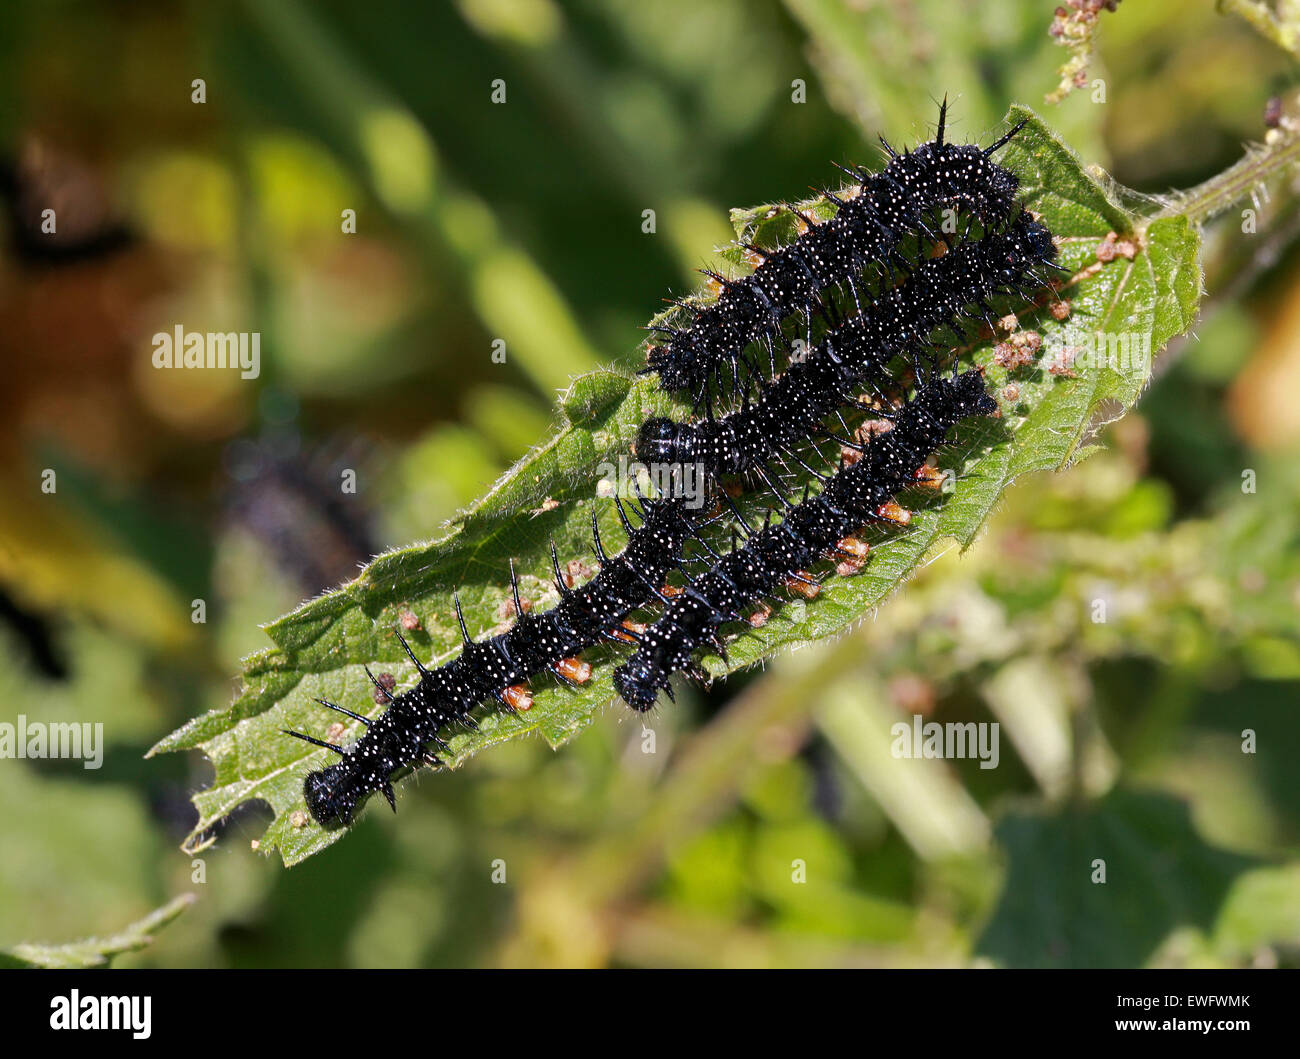 Peacock Butterfly Caterpillars, Inachis io, Nymphalidae, Feeding on Stinging Nettles, Urtica dioica. - Stock Image